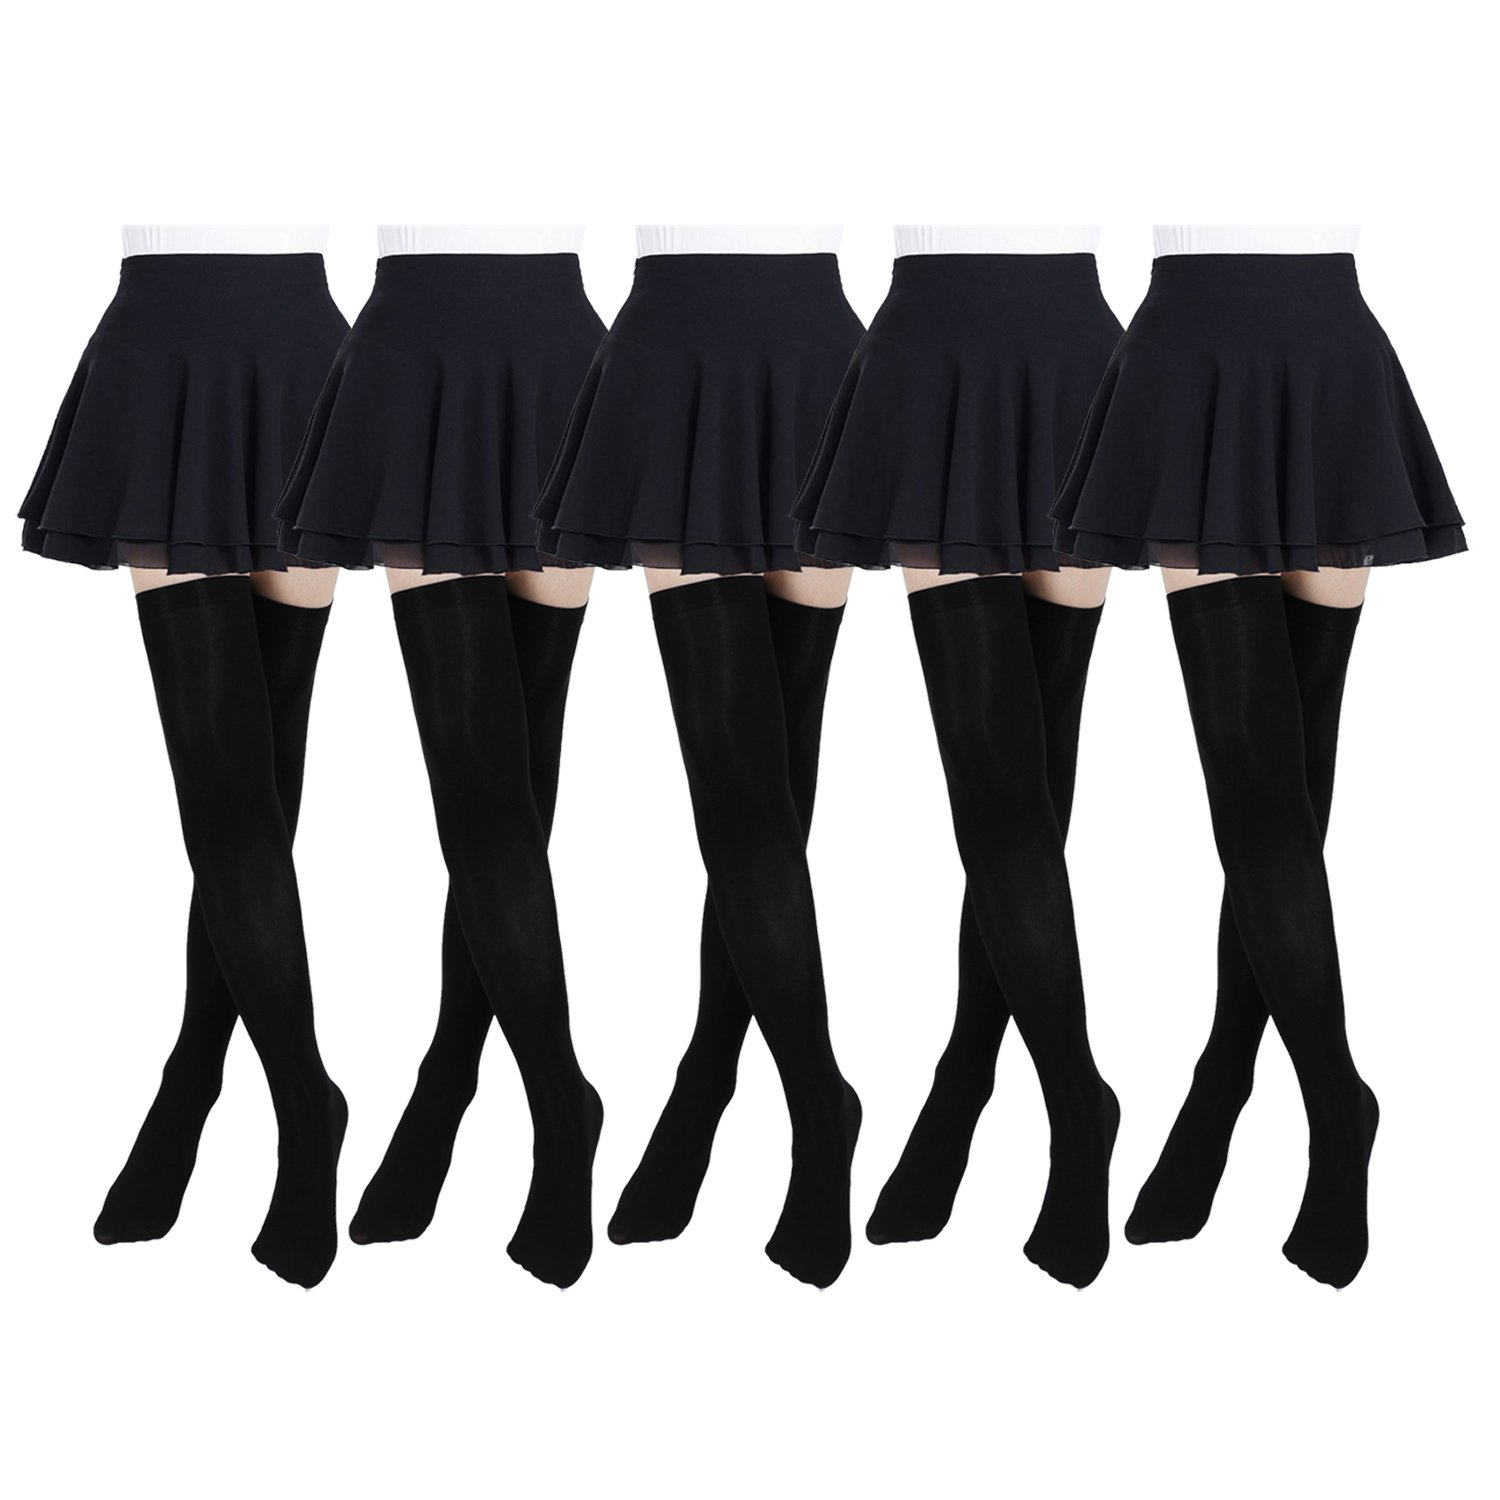 Women's Thigh High Stockings Socks of Solid Color Opaque Sexy,Over the Knee High Leg Socks 5-Pairs(Black)